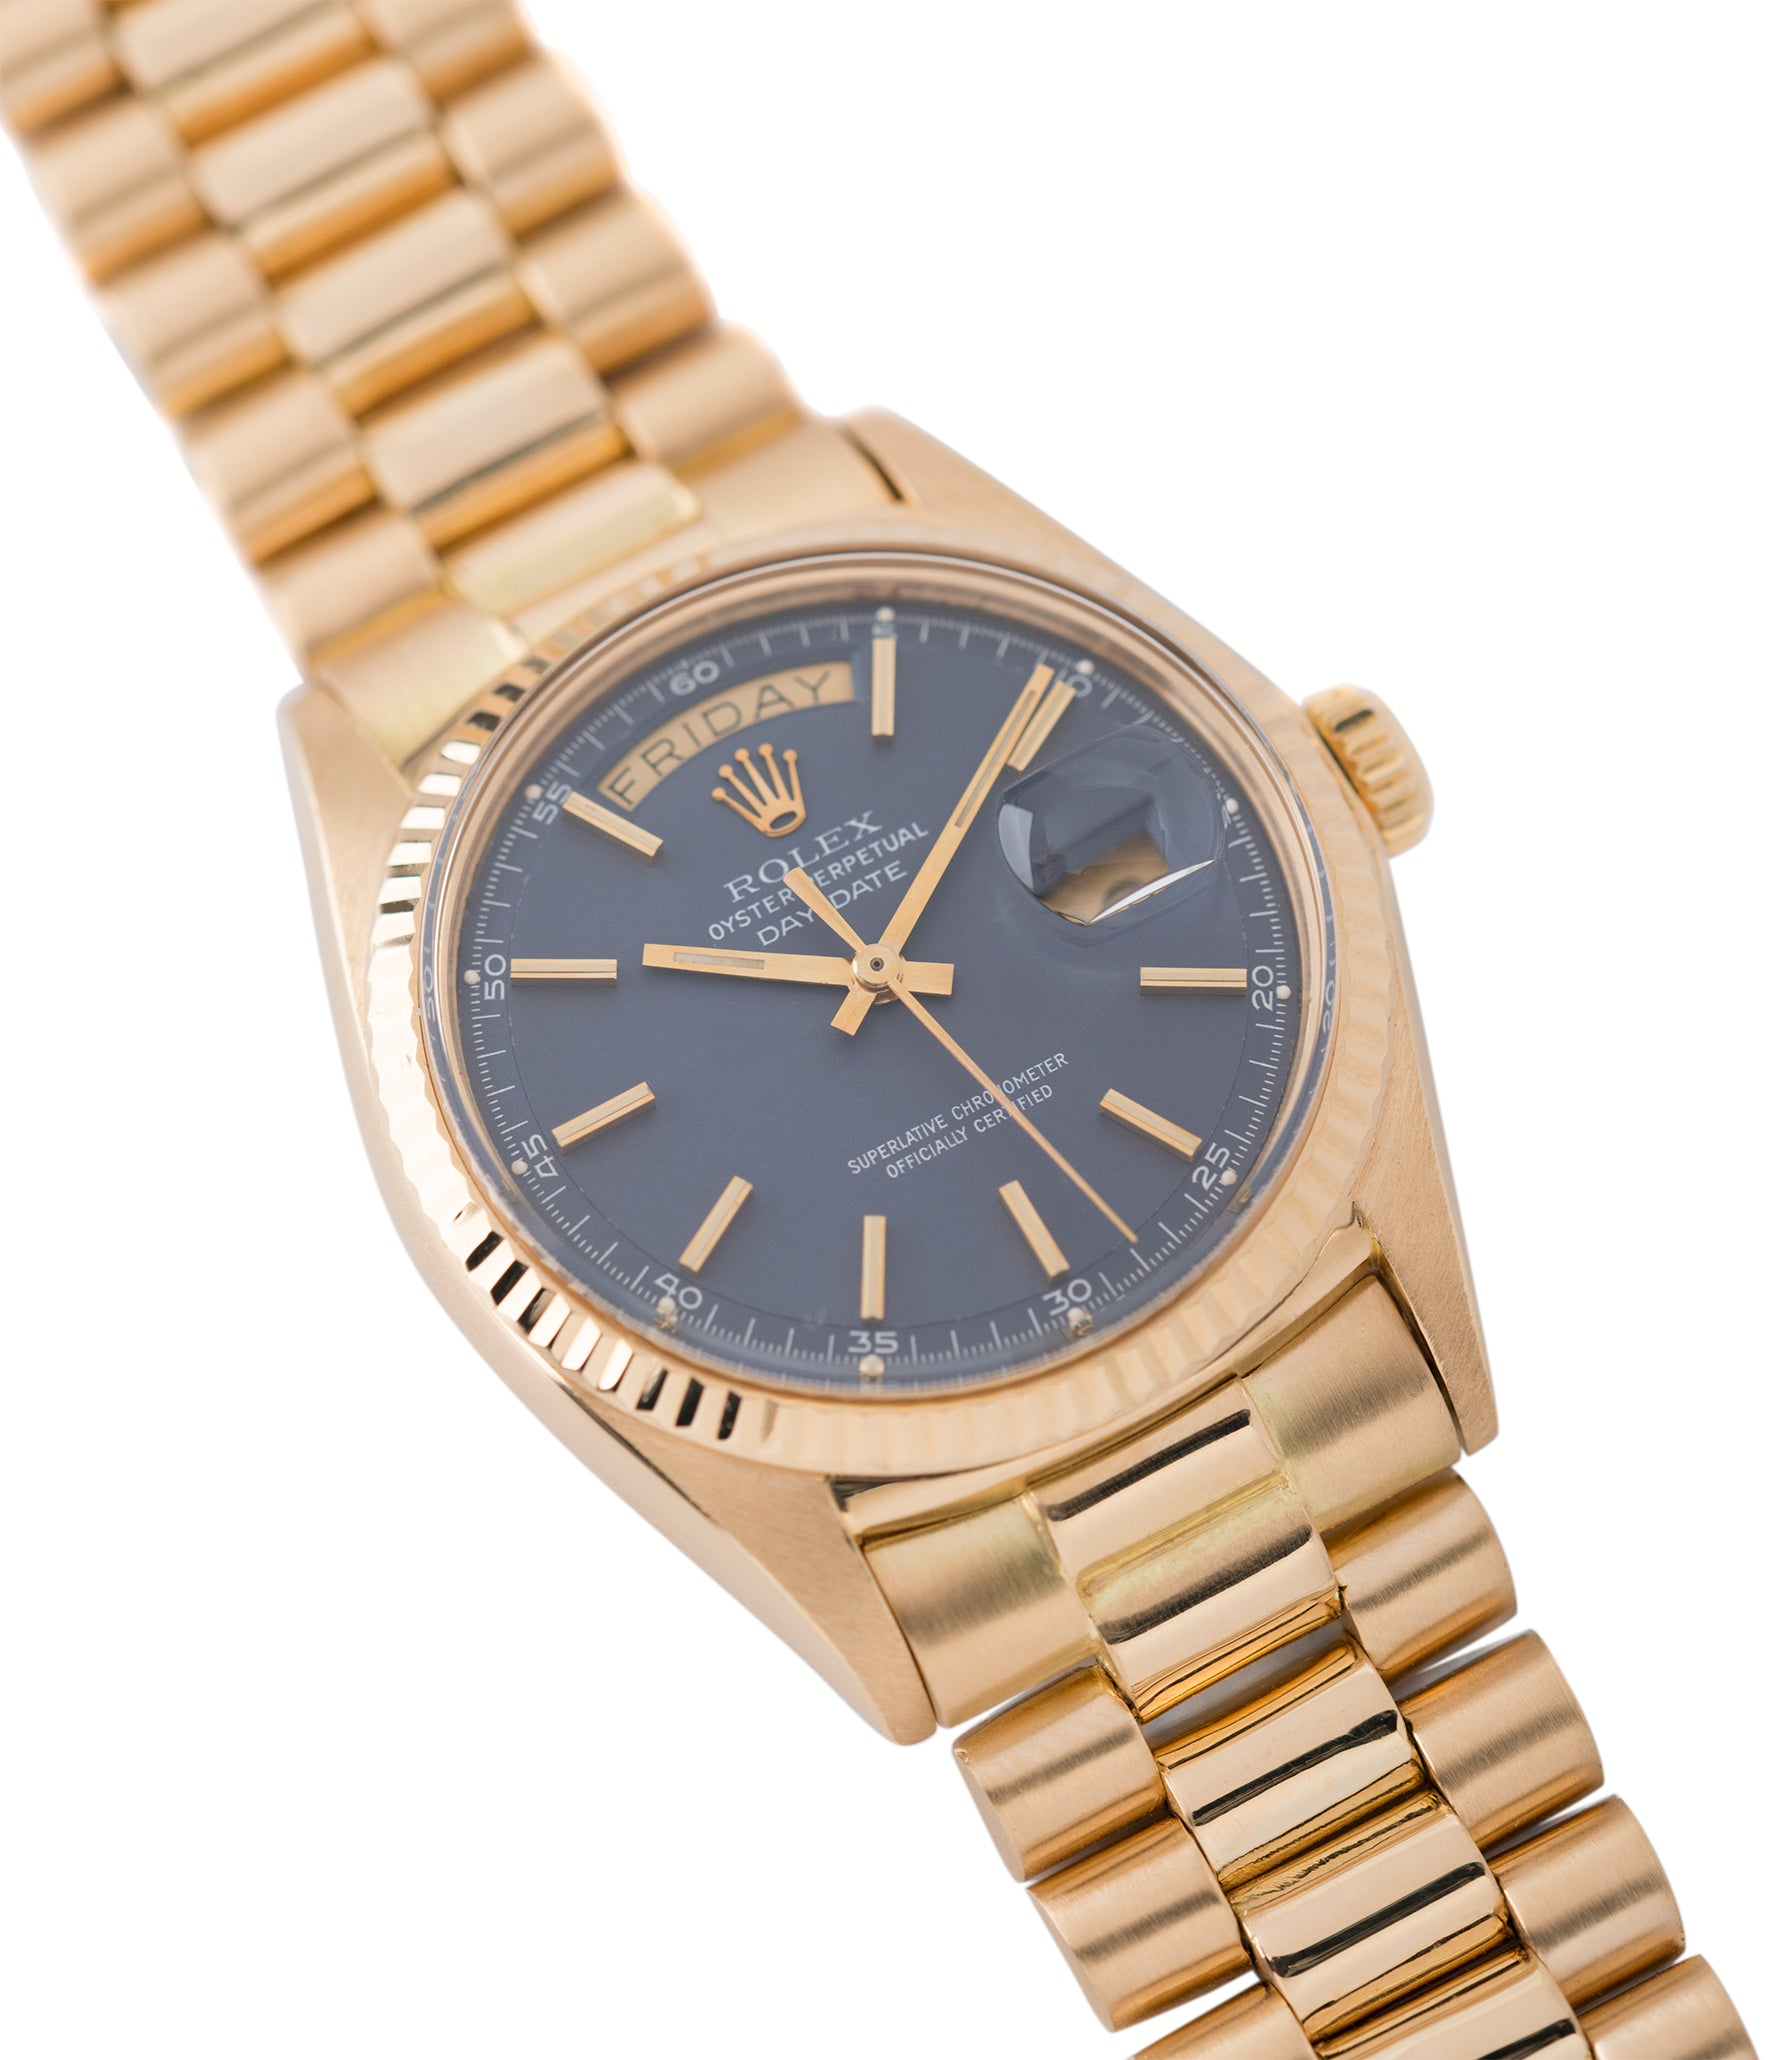 buy blue dial Day-Date vintage Rolex 1803 Oyster Perpetual Cal. 1556 gold watch for sale online at A Collected Man London UK specialist of rare watches